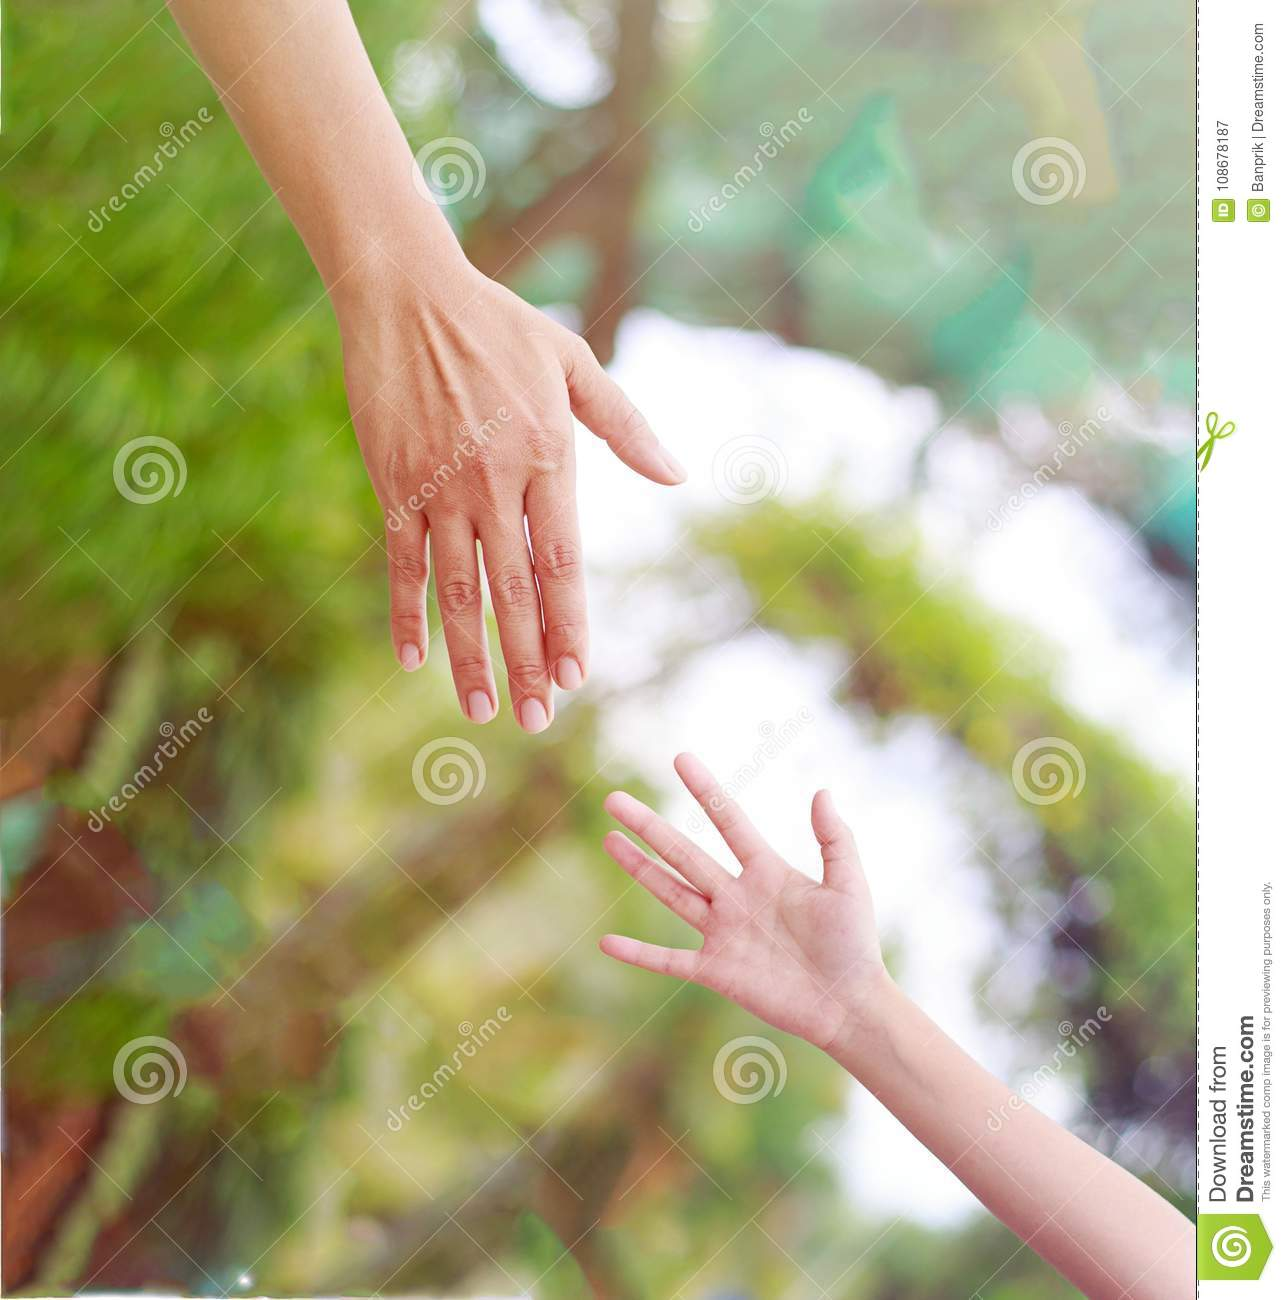 People Helping Each Other: Give A Helping Hand Stock Image. Image Of Love, Faith